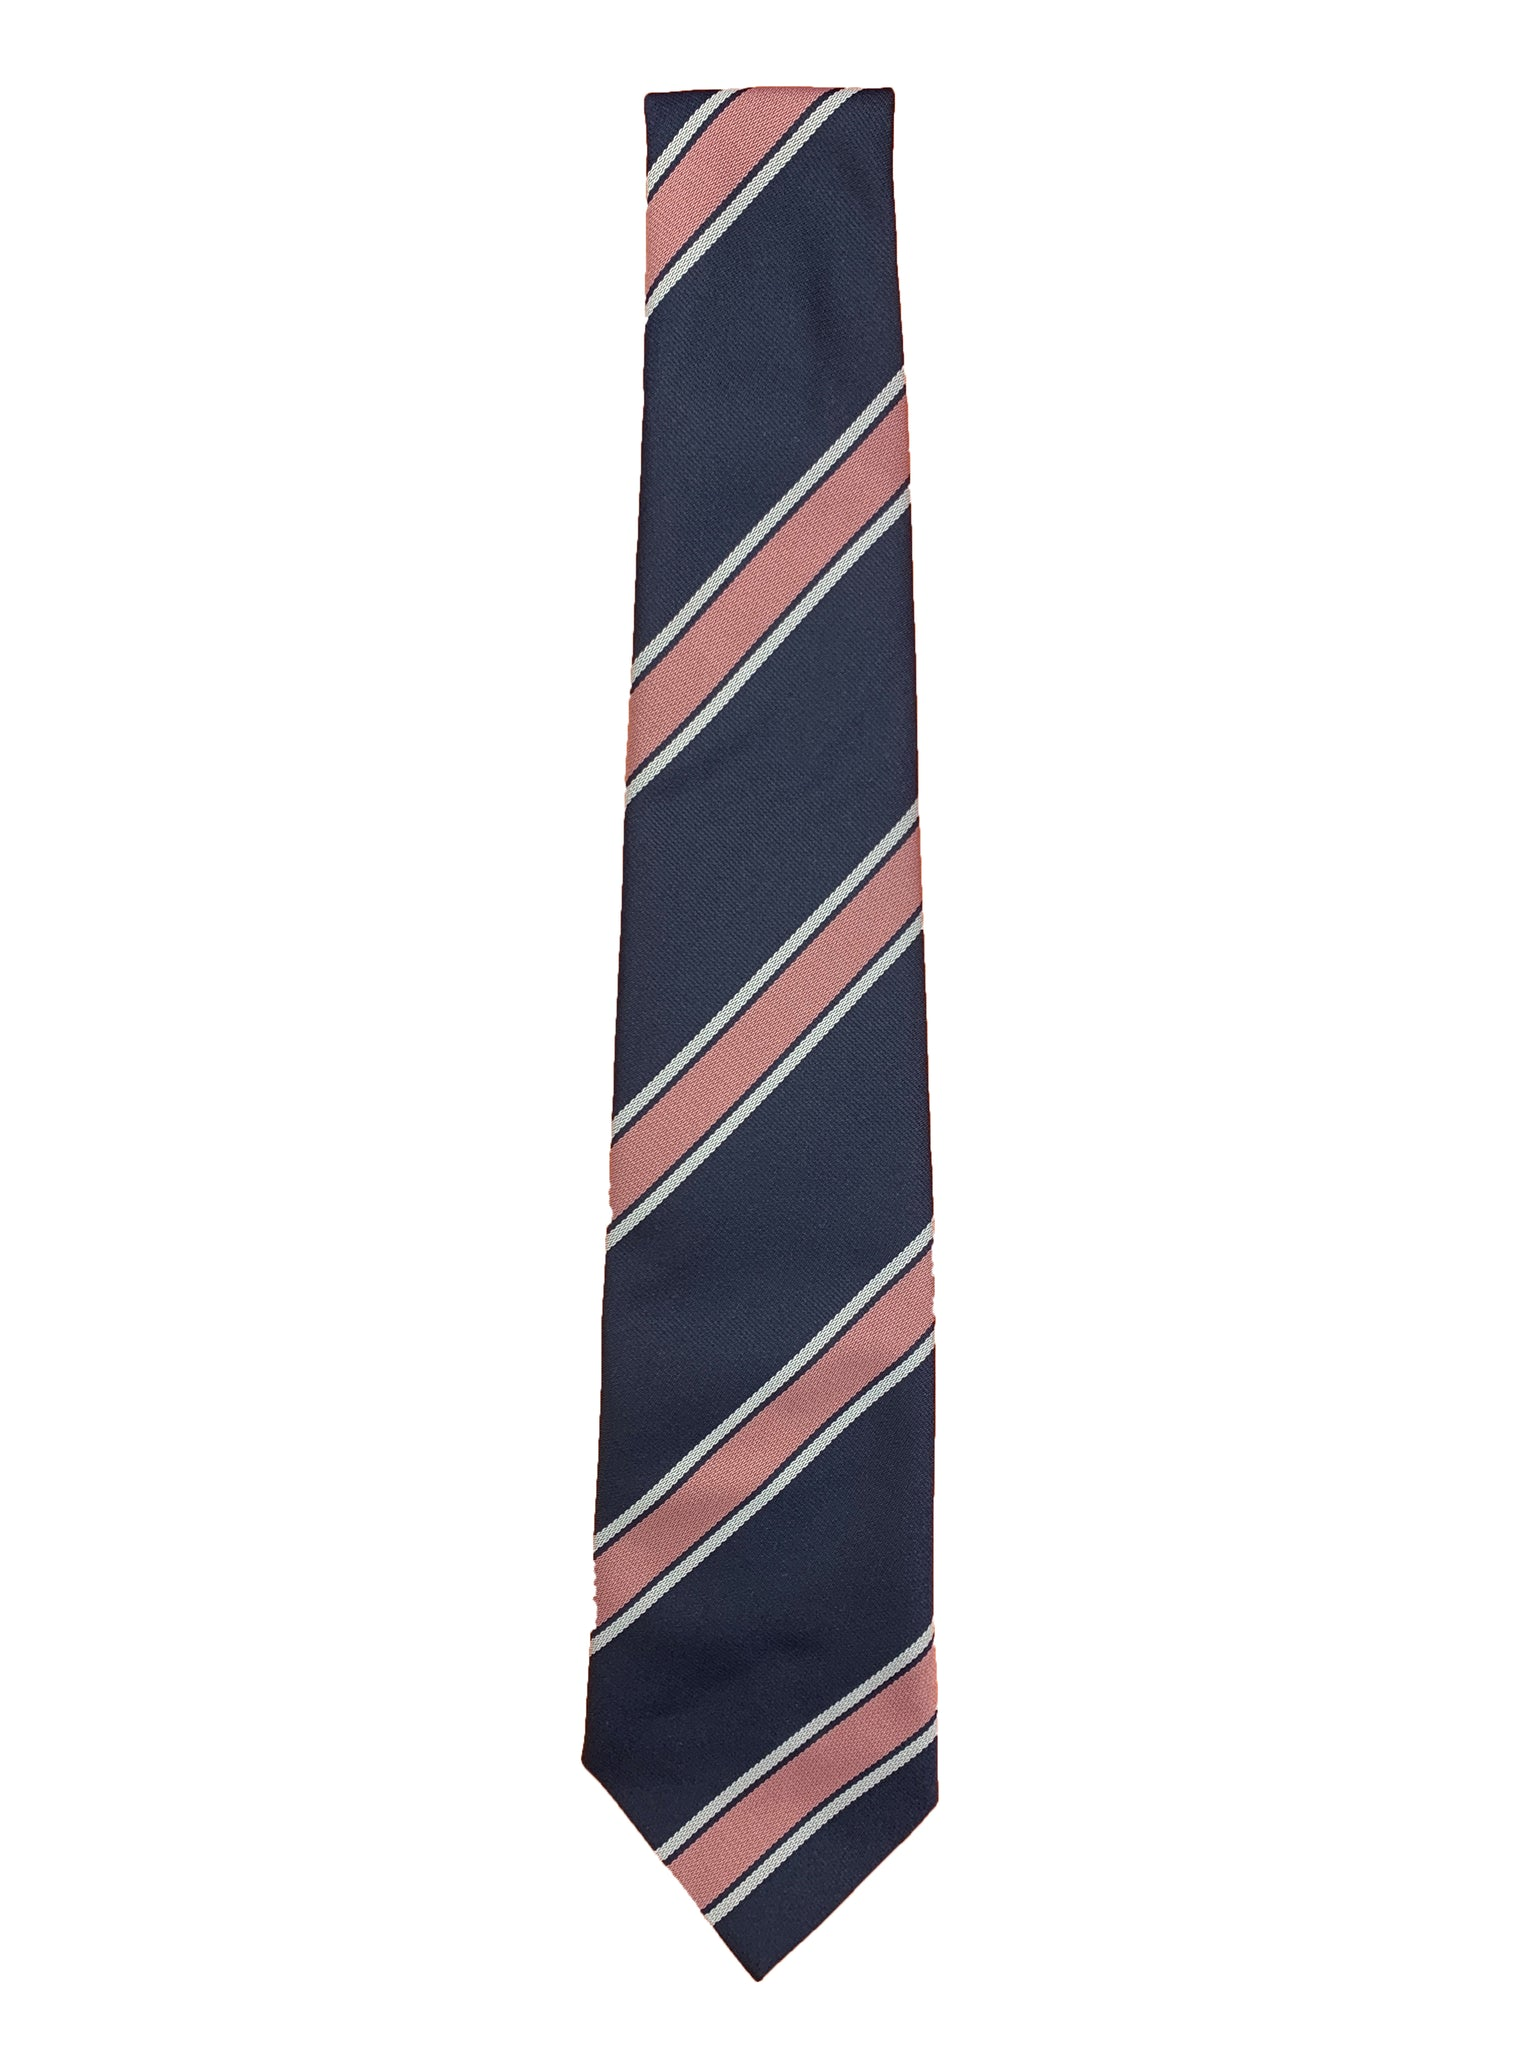 Girls' House Tie